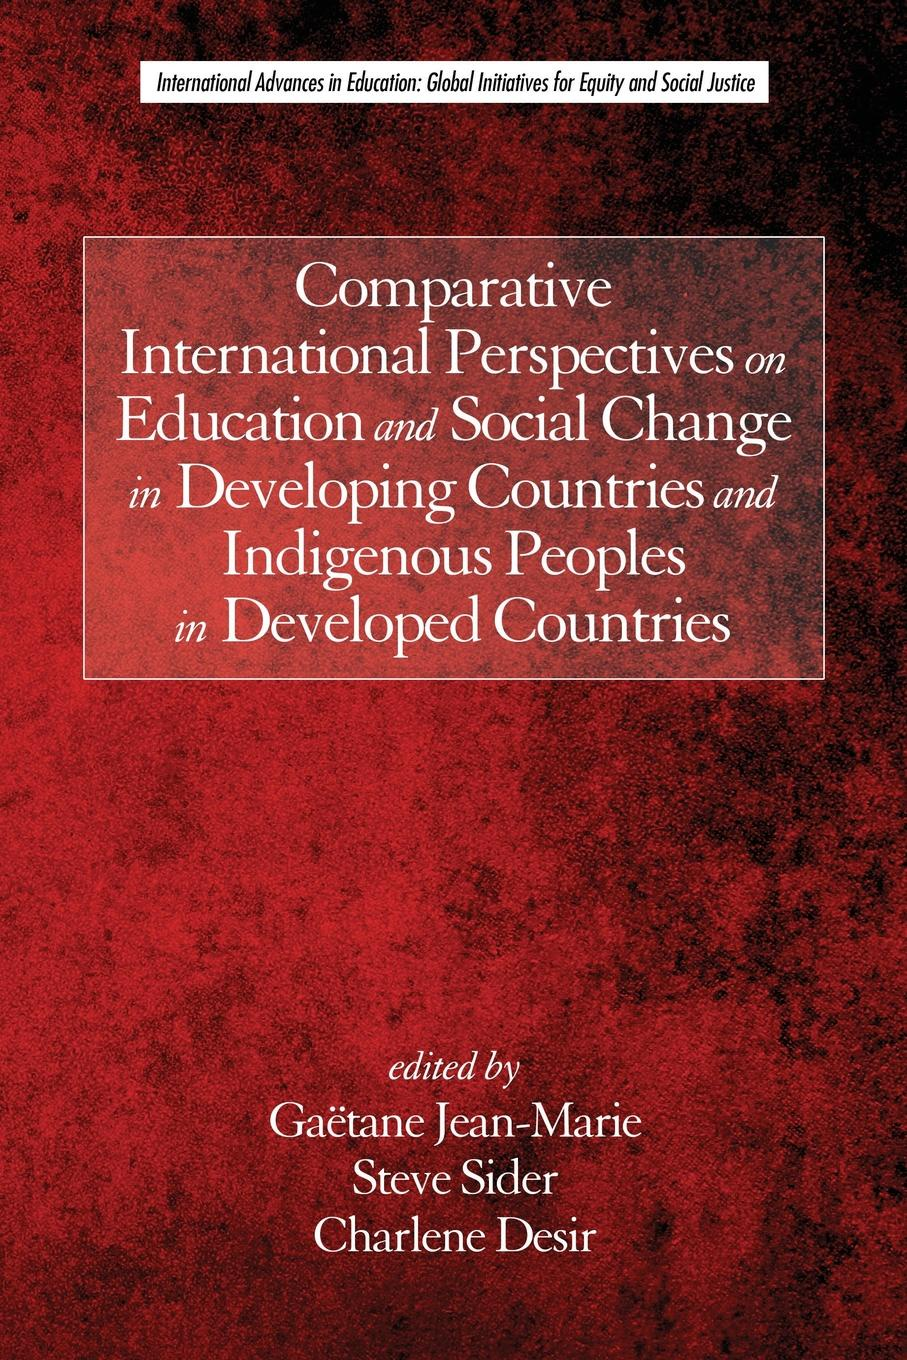 цена Comparative International Perspectives on Education and Social Change in Developing Countries and Indigenous Peoples in Developed Countries